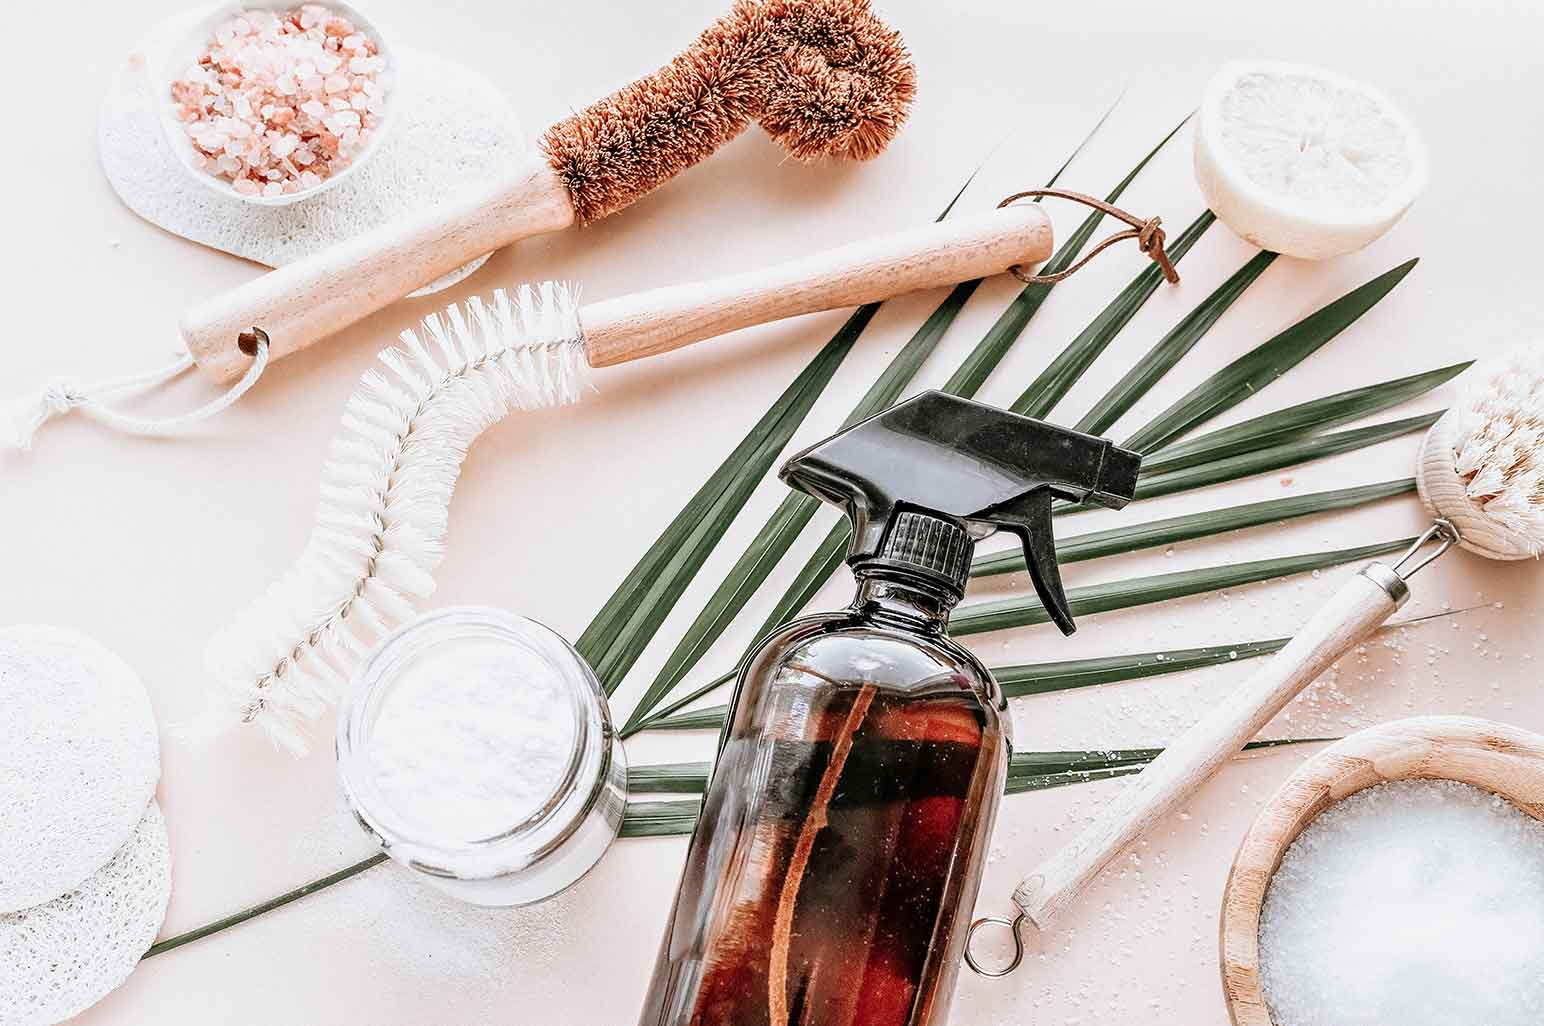 Green Cleaning: 8 Major Reasons to Use Eco-Friendly Products